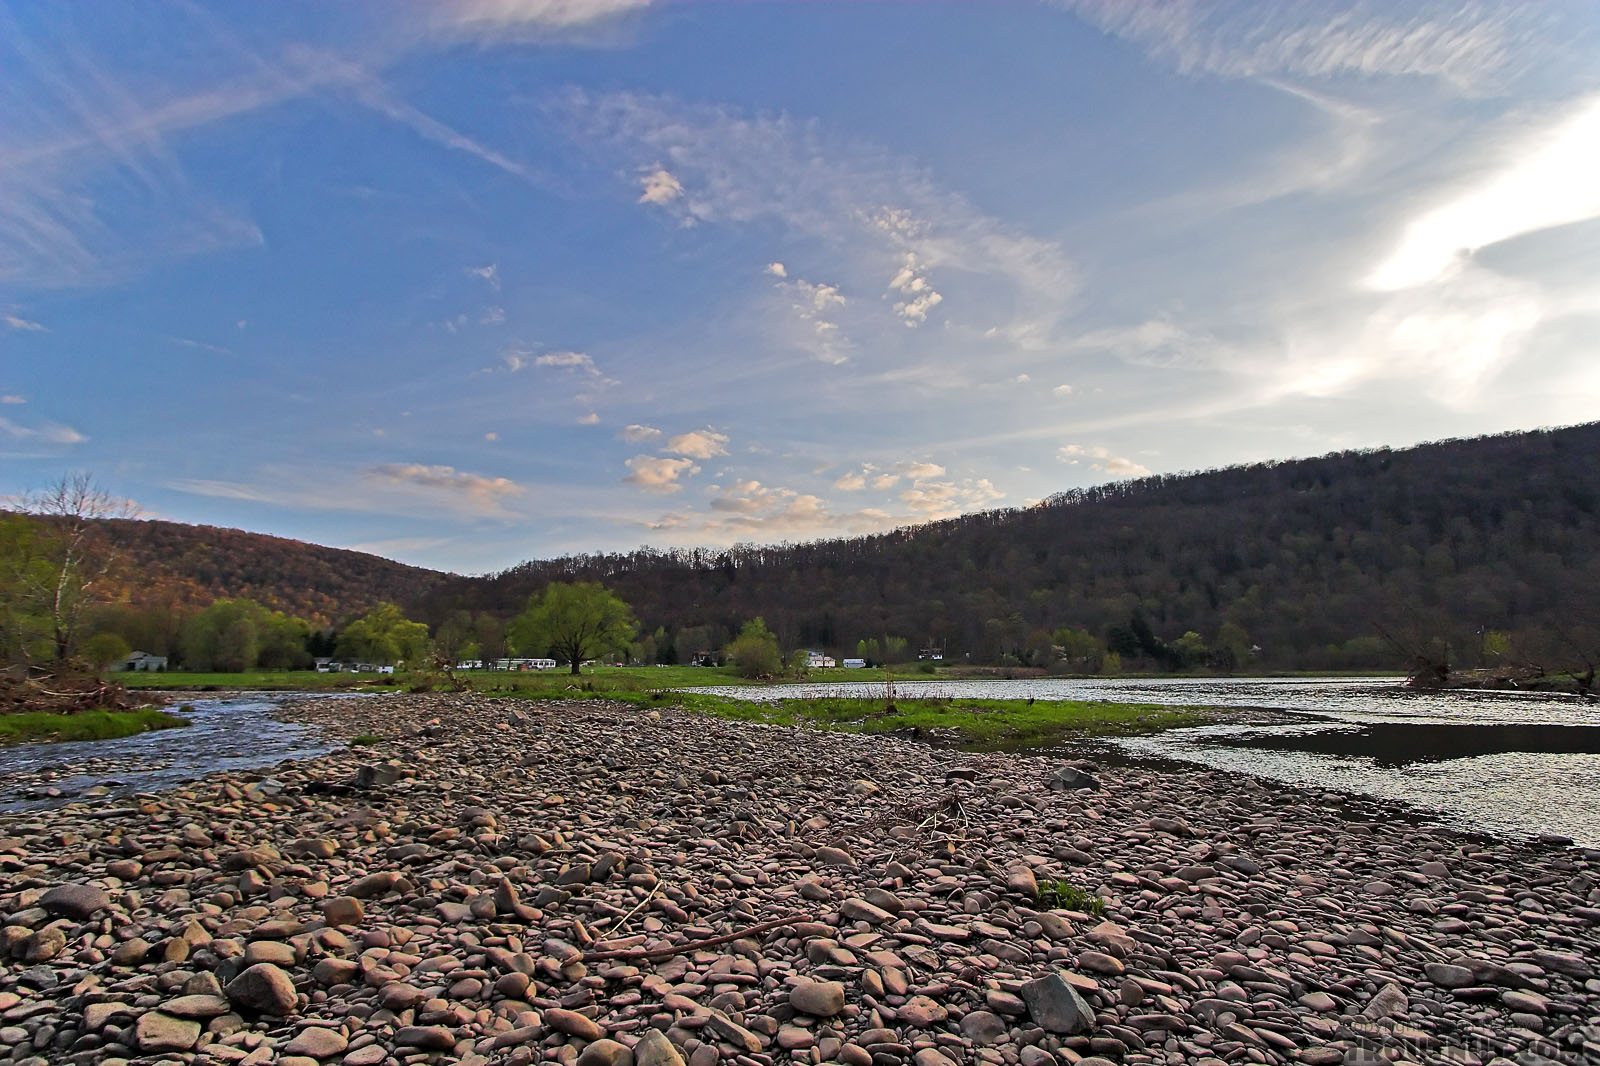 A tributary on the left approaches the large Catskill river on the right. From the West Branch of the Delaware River in New York.